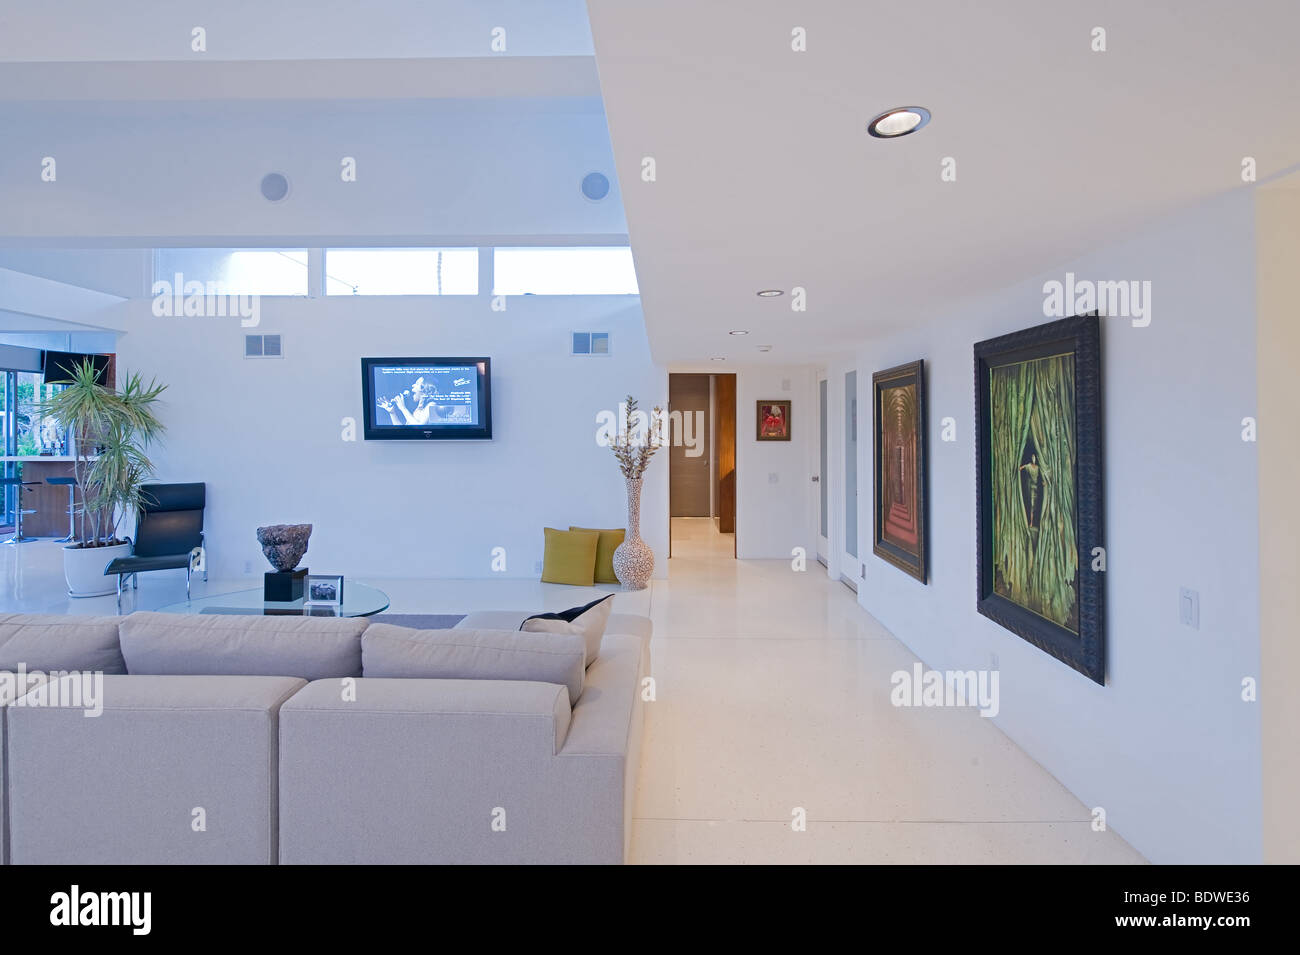 View of art-filled walls of hallway in a restored Palm Springs Mid-Century modern home - Stock Image